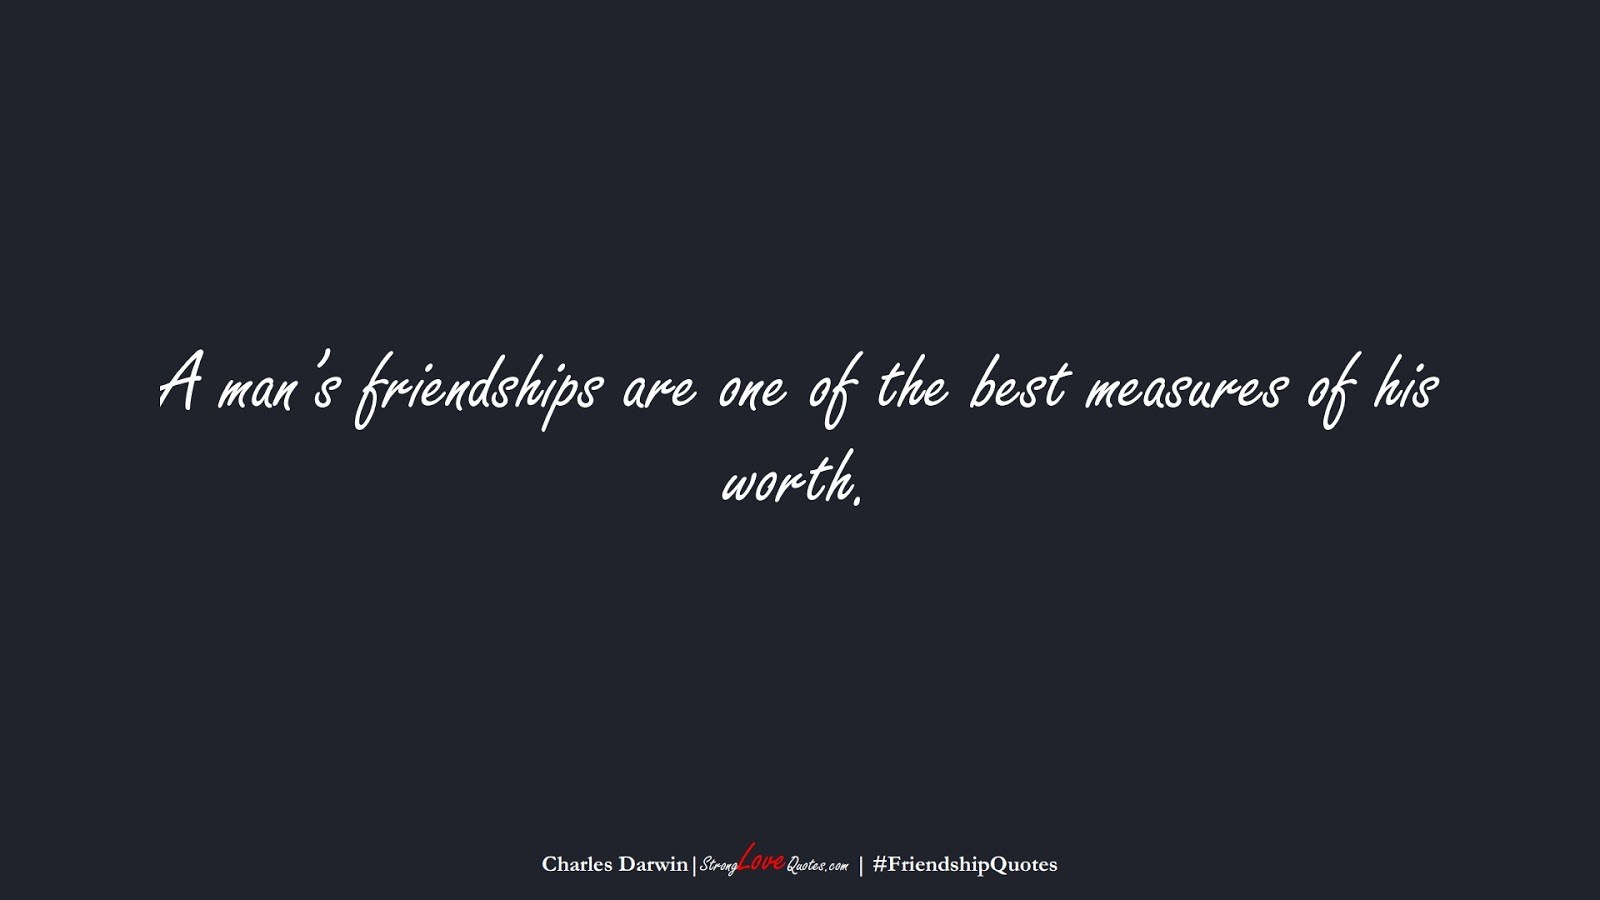 A man's friendships are one of the best measures of his worth. (Charles Darwin);  #FriendshipQuotes